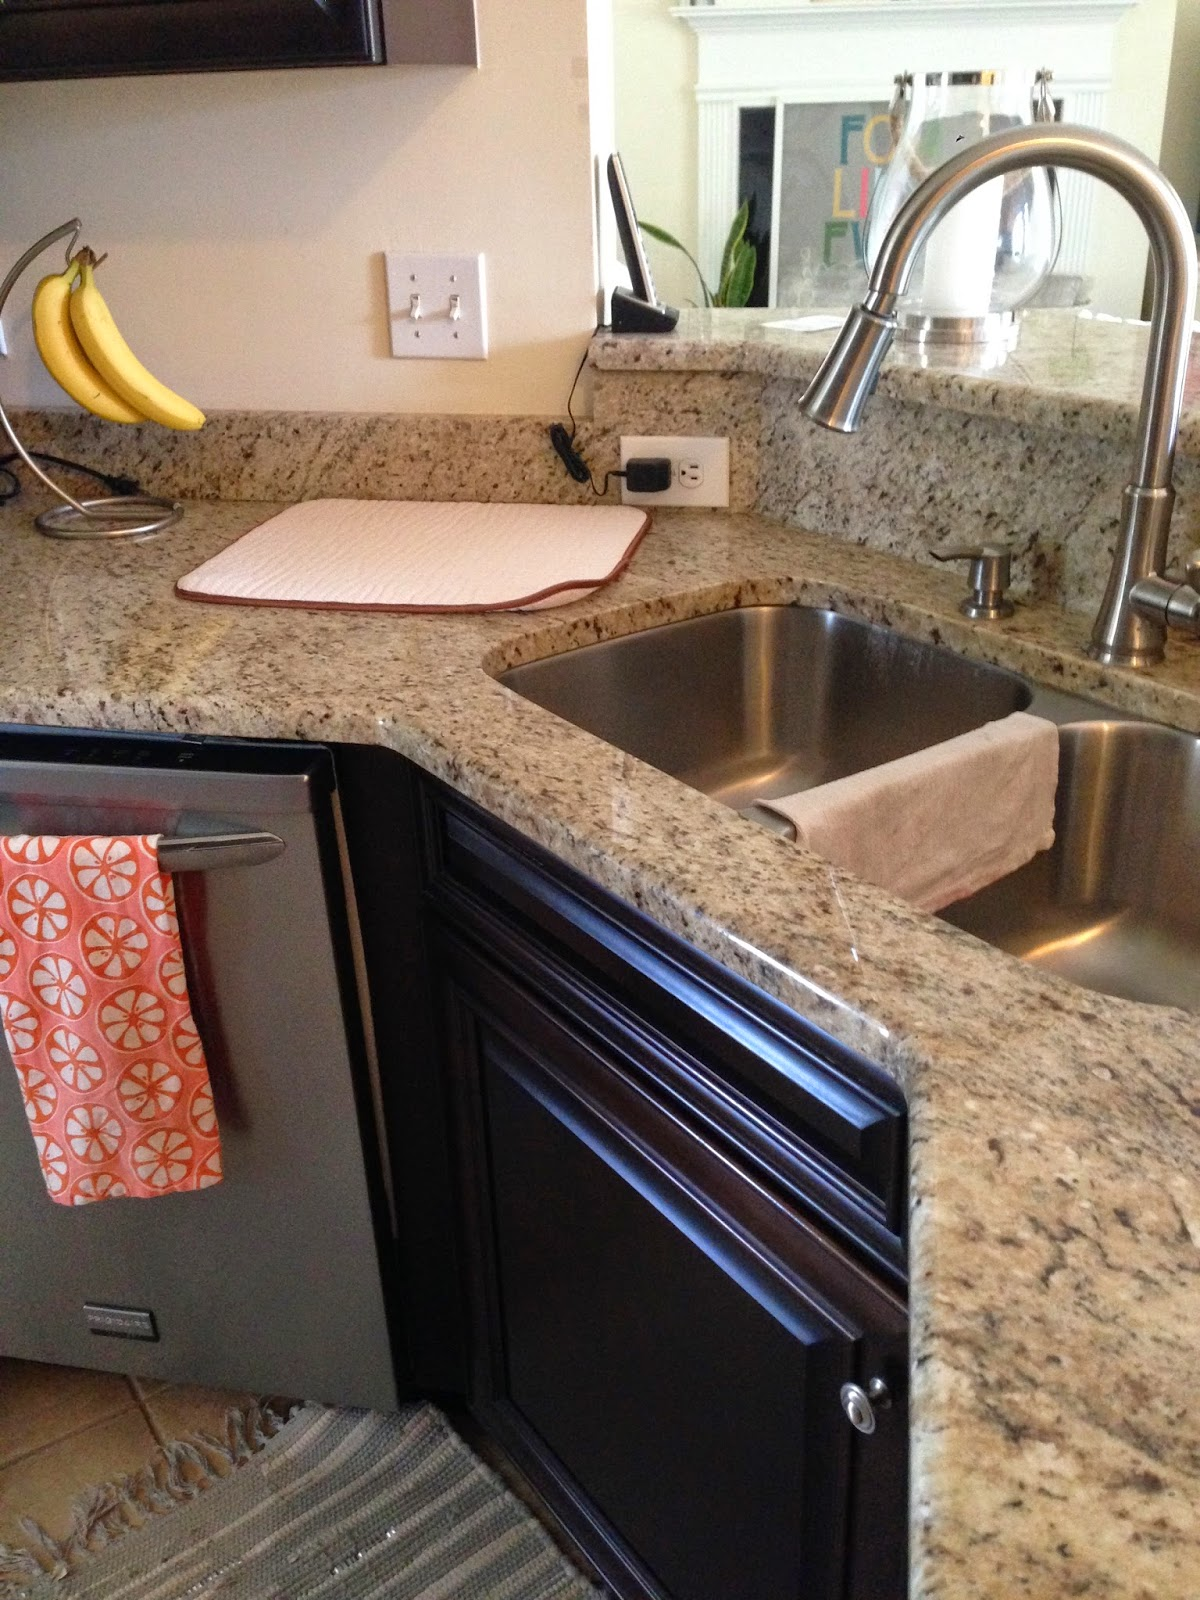 Inside out design organizing a few kitchen supplies i hate seeing the dish rag draped across the center of the sink and the dish drying mat always taking up counter space its a small thing but its workwithnaturefo